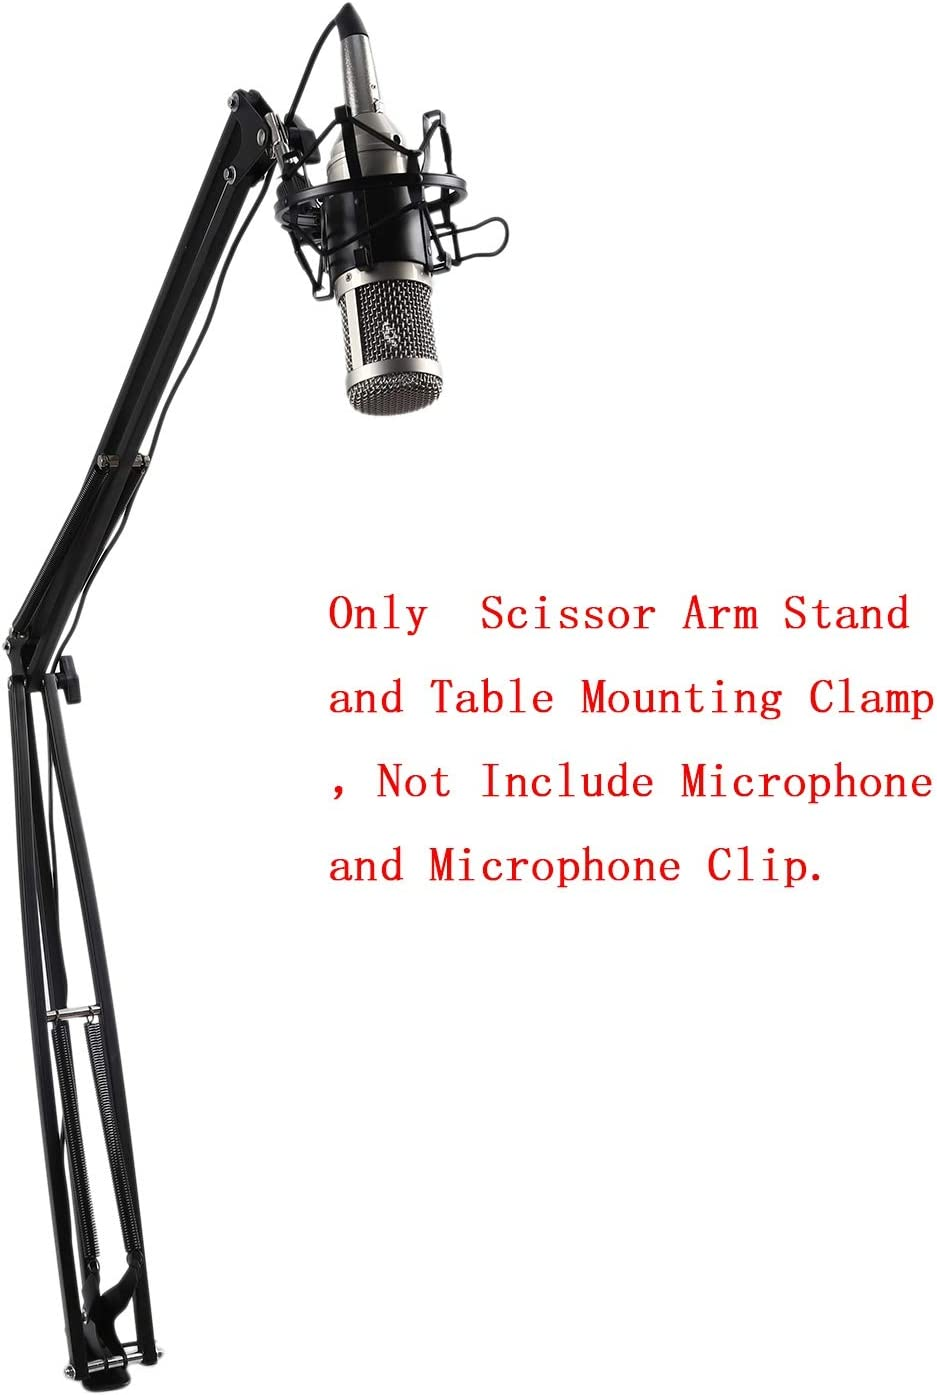 SNOWINSPRING NB39 Microphone Scissor Arm Stand 100Cm High Table Top Boom Mic Suspension Mount for Blue Pro USB Microphone Holder